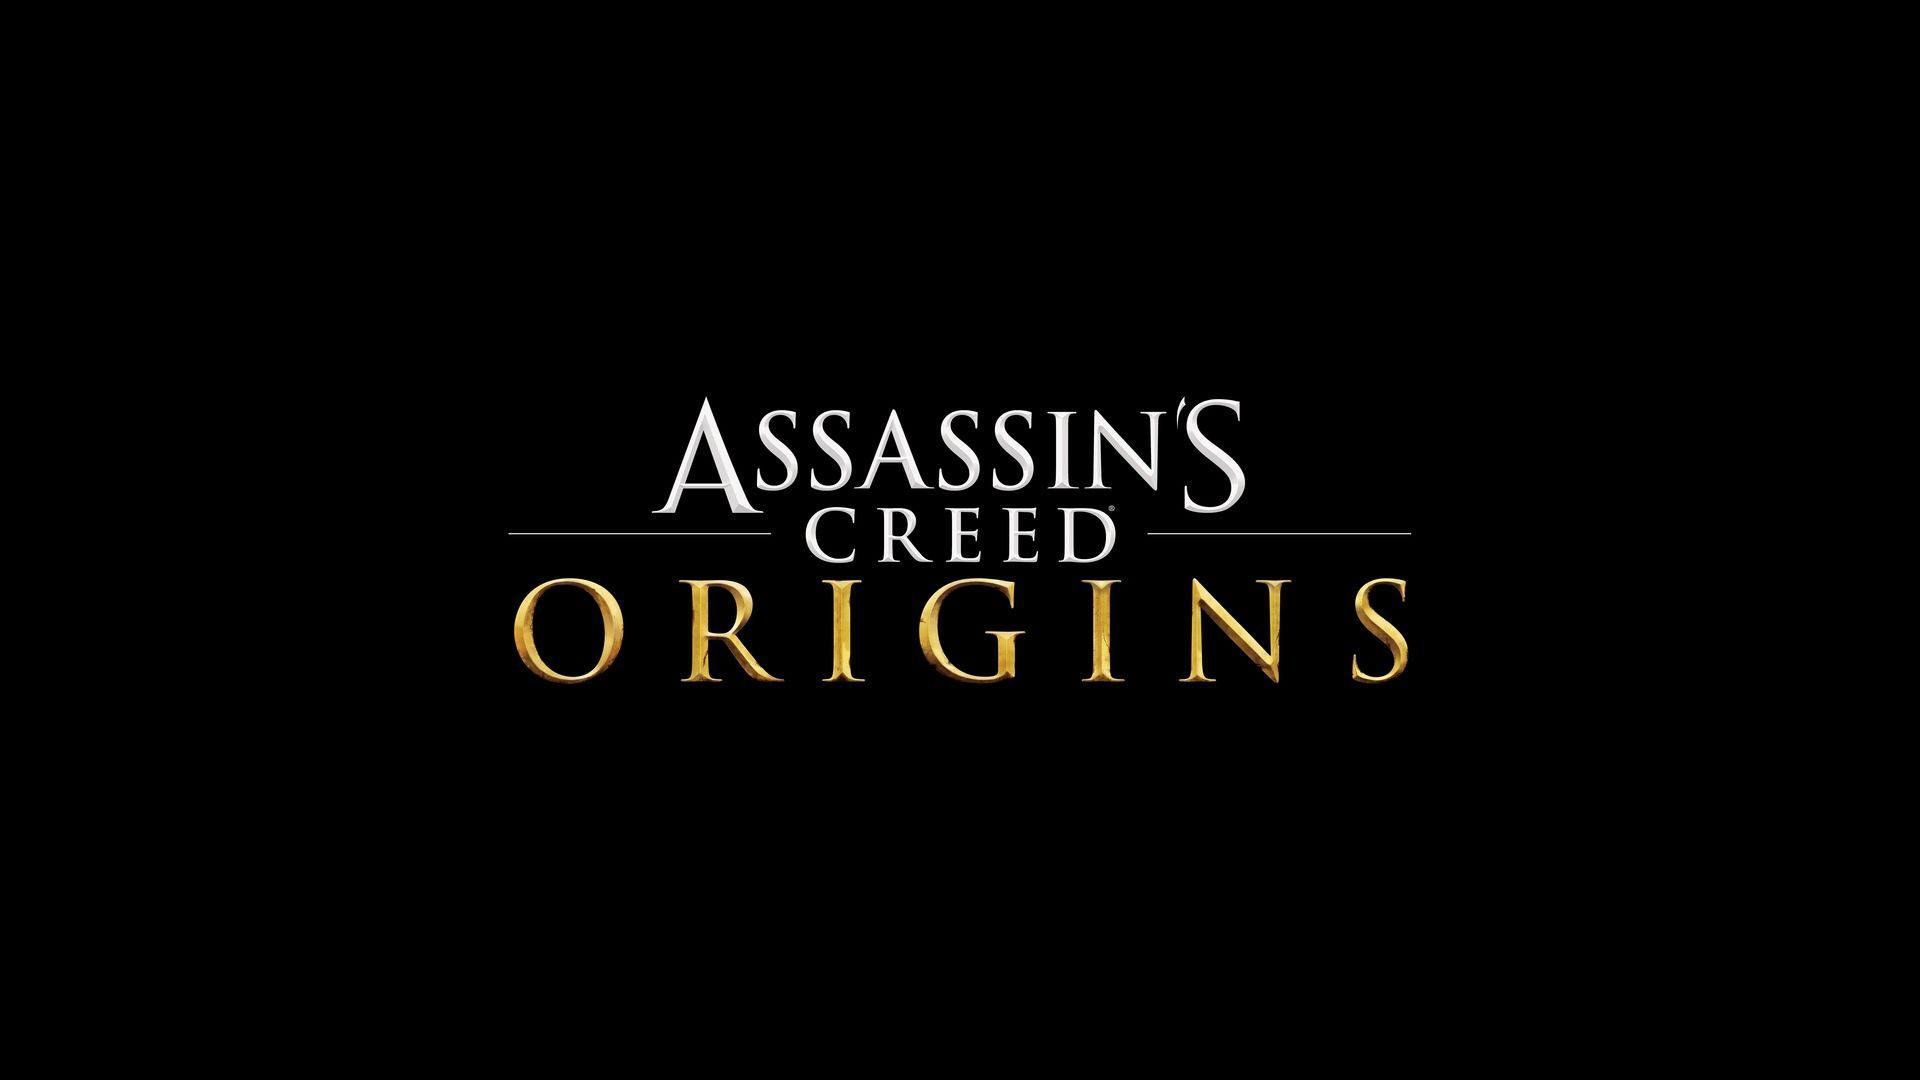 Assassins Creed Origins Game Logo Wallpapers